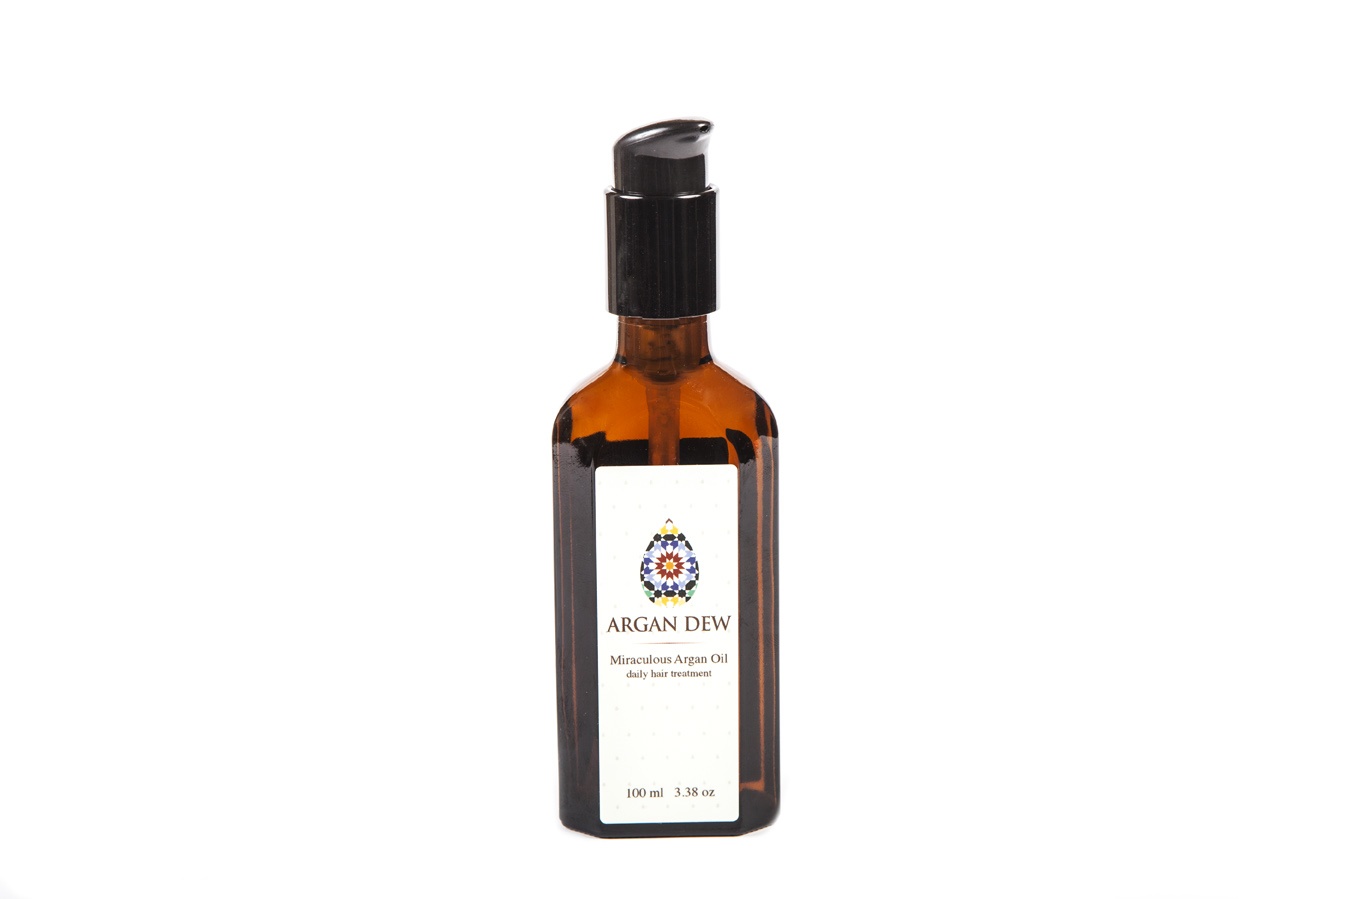 Argan Dew Miraculous Oil